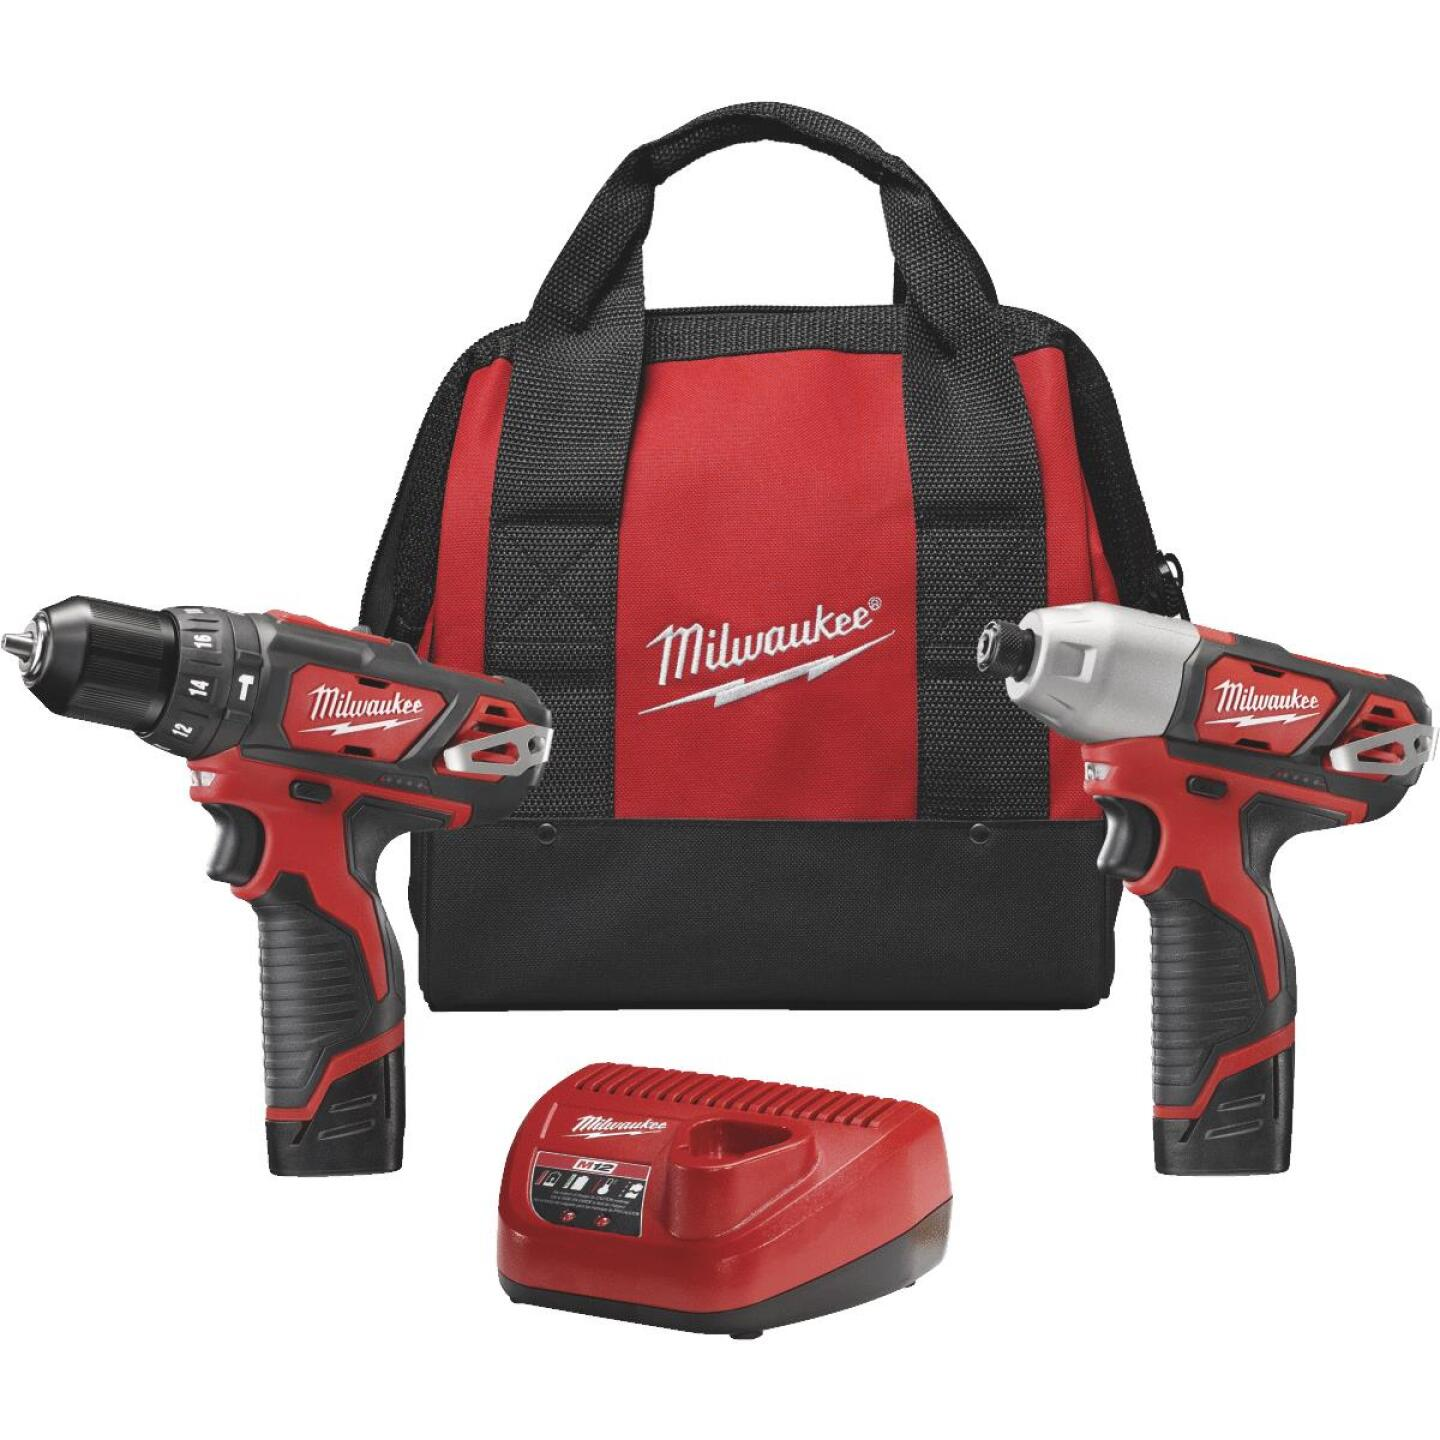 Milwaukee 2-Tool M12 12V Lithium-Ion Hammer Drill & Impact Driver Cordless Tool Combo Kit Image 1